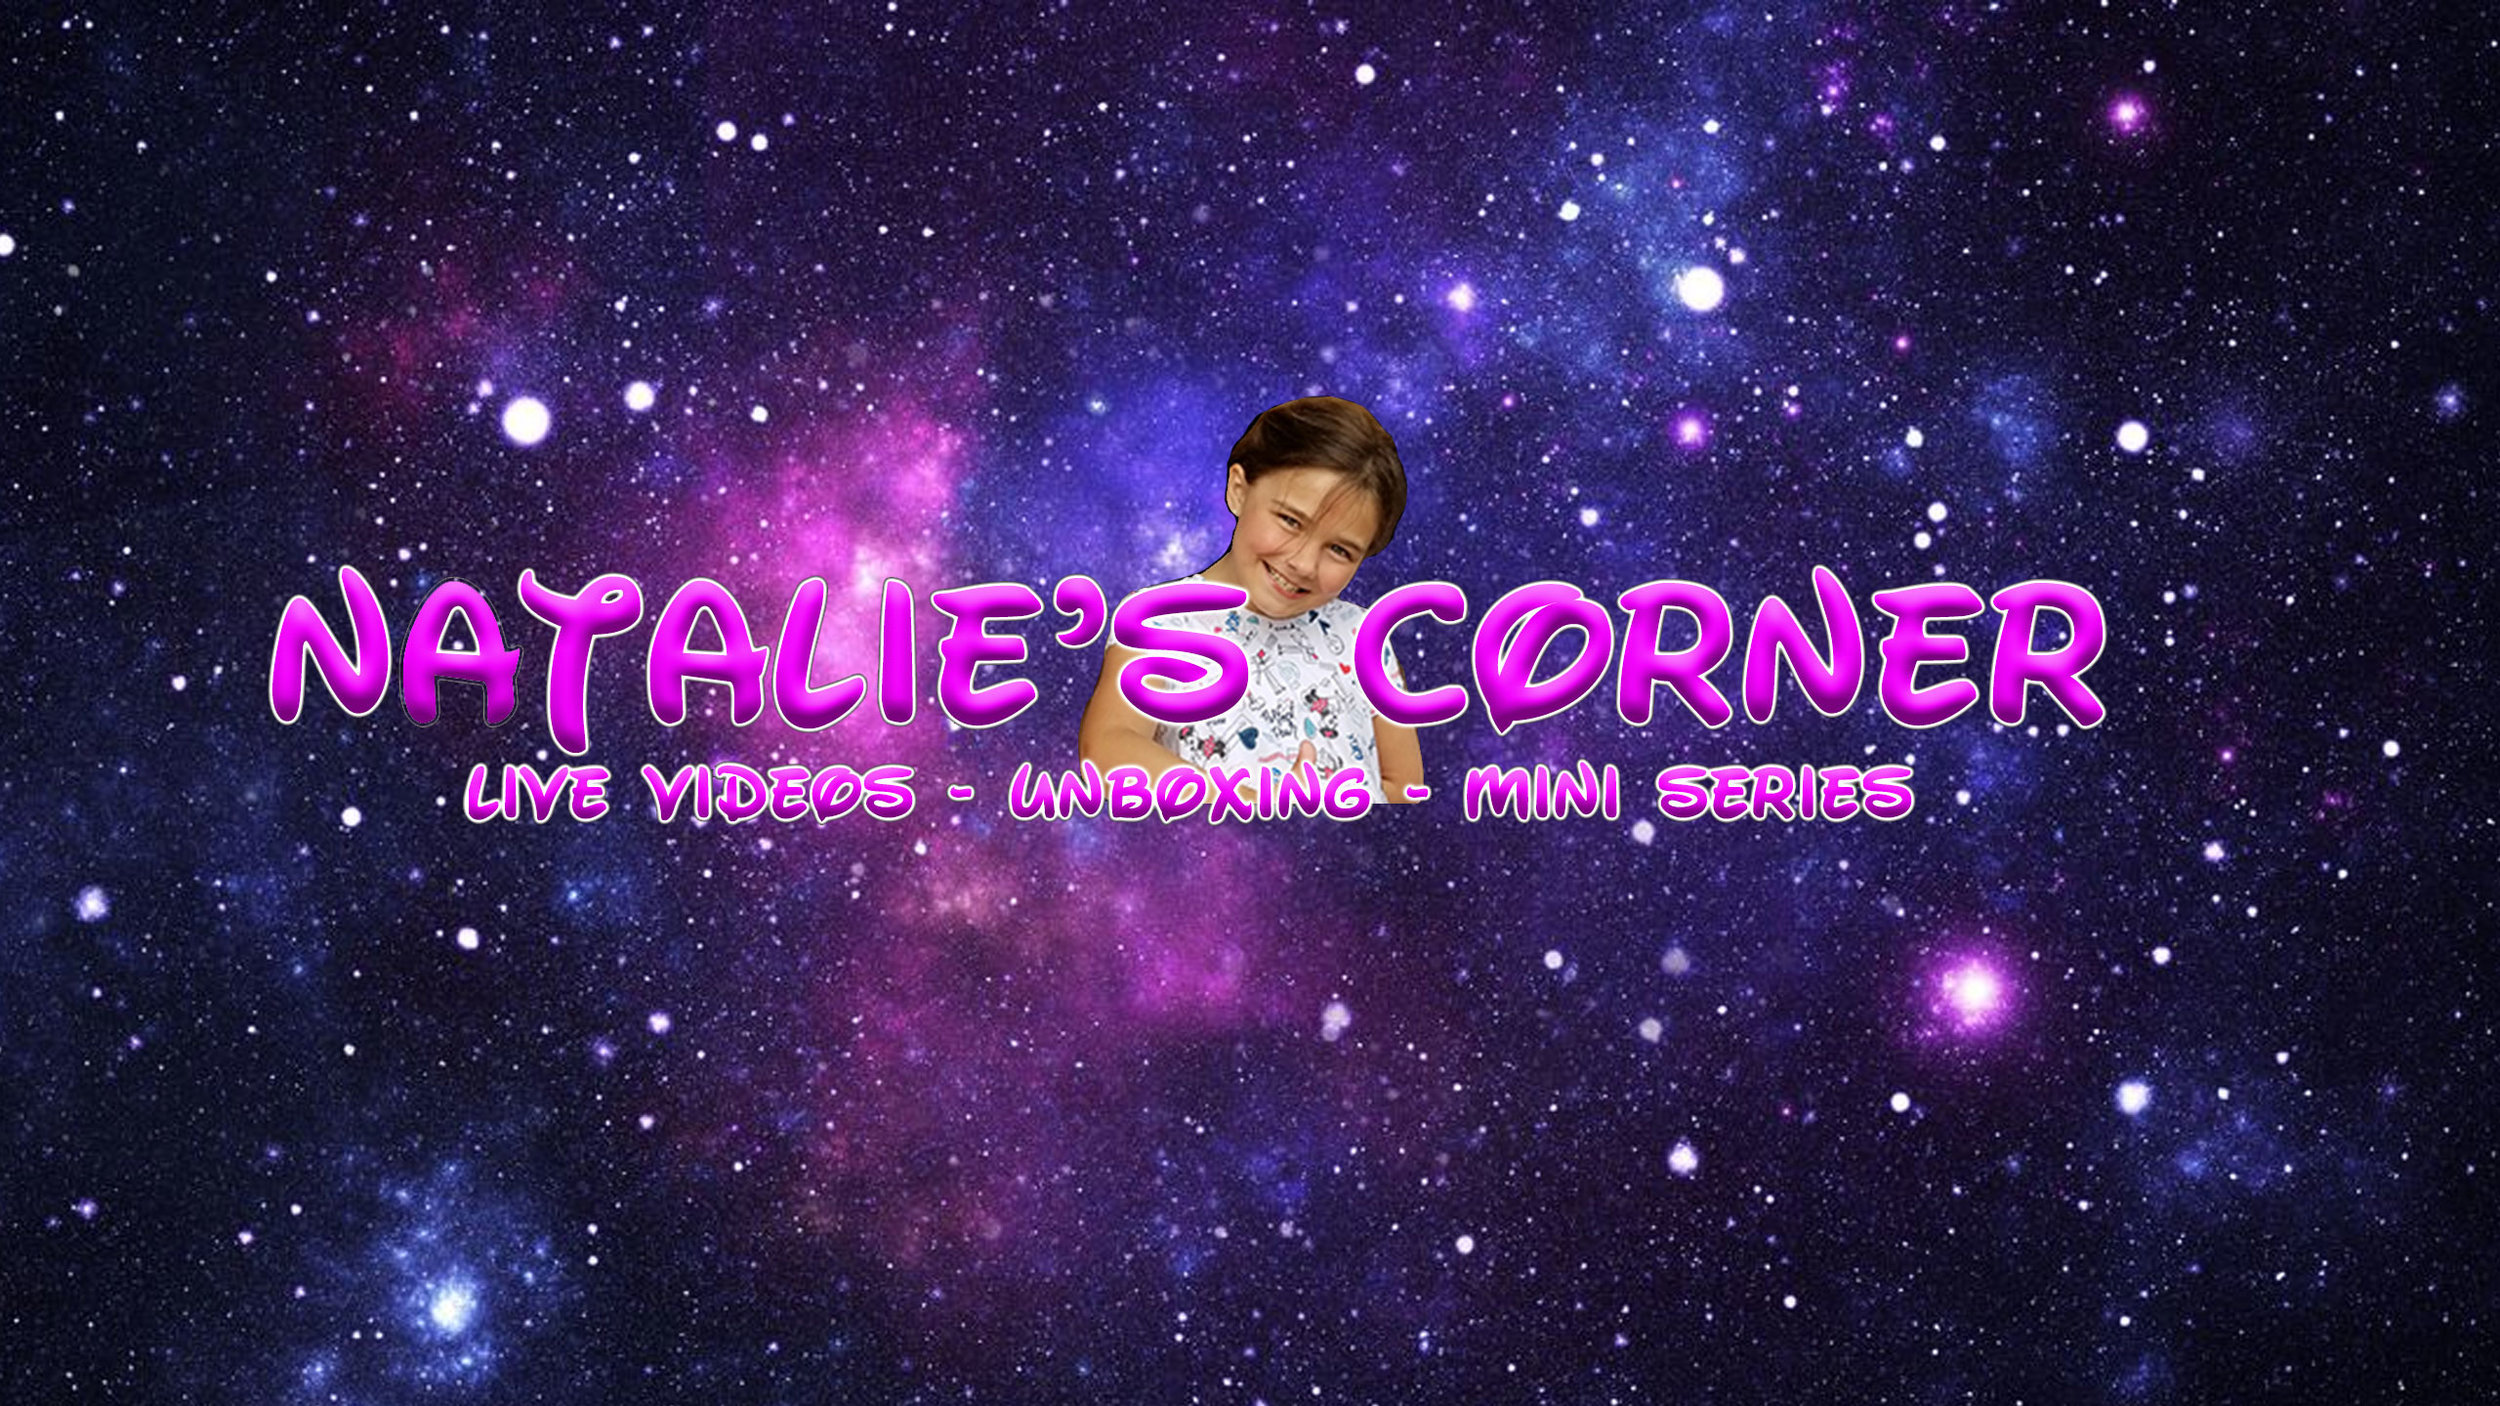 Natalie's Corner - It All started when Natalie wanted to work with her father ACourchez and make her own videos. She started with a few VLOG style videos on her life. She did very well on camera. As she got older and her father started learning visual effects, Natalie wanted to do more. So they worked together making little short stories based around Natalie's famdom worlds (Harry Potter, Star Wars, Doctor Who, Ect..). Natalie's Creations was born. One day while camping at Disney's Fort Wilderness Campground, Natalie me Dawn and Ray from a camper rental company called Camper Rental Adventures. Turns out they were fans of her shows. They hired Natalie to do some specials in the campground showing off activities at Fort Wilderness for there potential clients to see. Instant Hit! Now Natalie does Live Broadcasts with her father weekly at the Fort. After being introduced to YouTube Kids, Natalie grew a love for toy unboxing videos and wanted to try it. Once again, her talents shined and another show was born, Unboxing with Natalie.